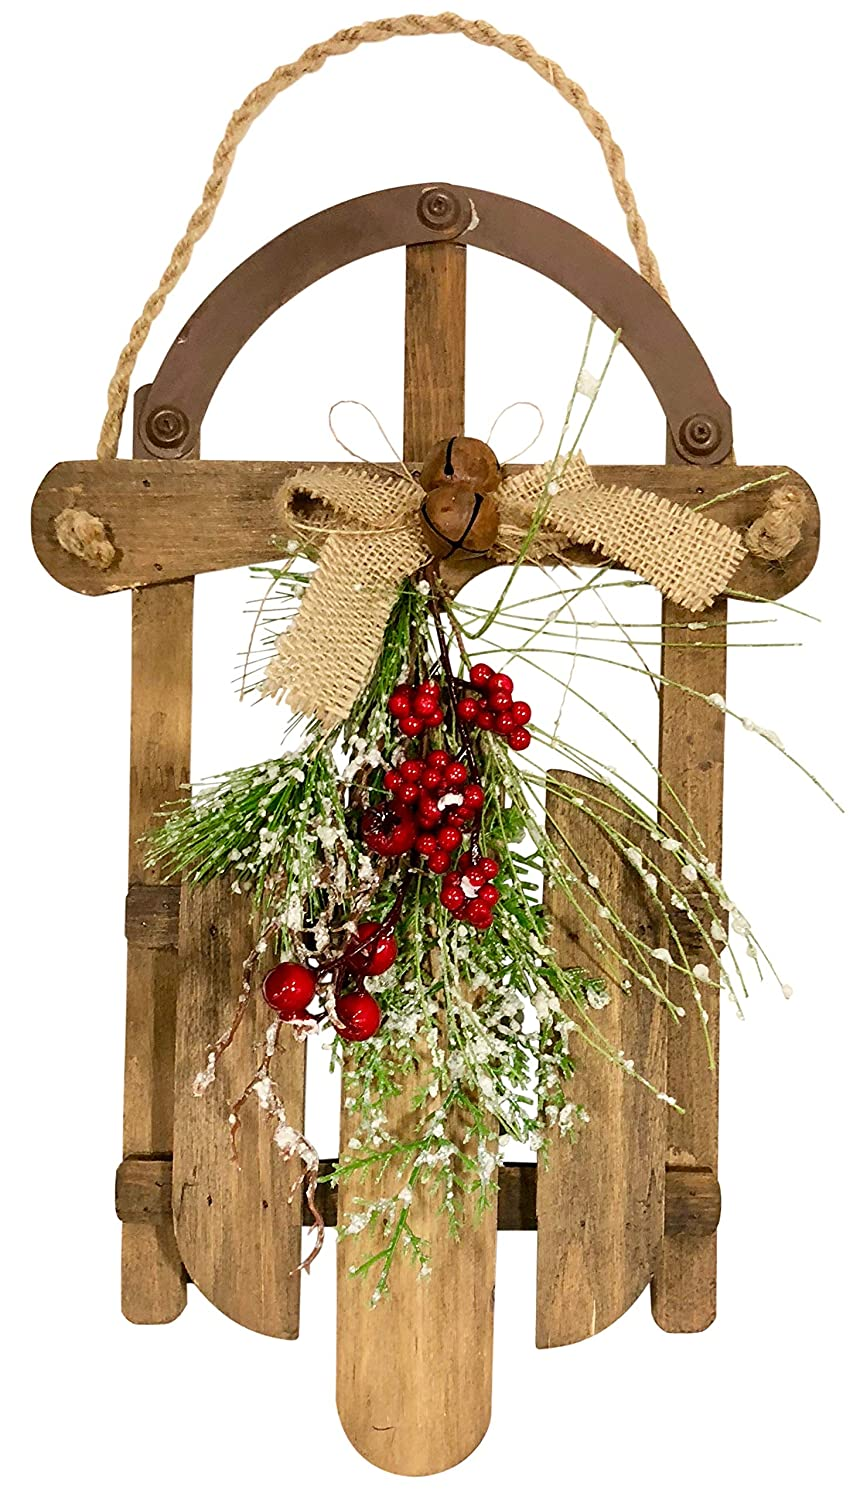 Clovers Garden Christmas Sleigh Wall De´cor Rustic Holiday Sled Decoration for Mantel, Door, Bookshelf – Artisan Wood Decorative Indoor Wall Hanging for Home or Office